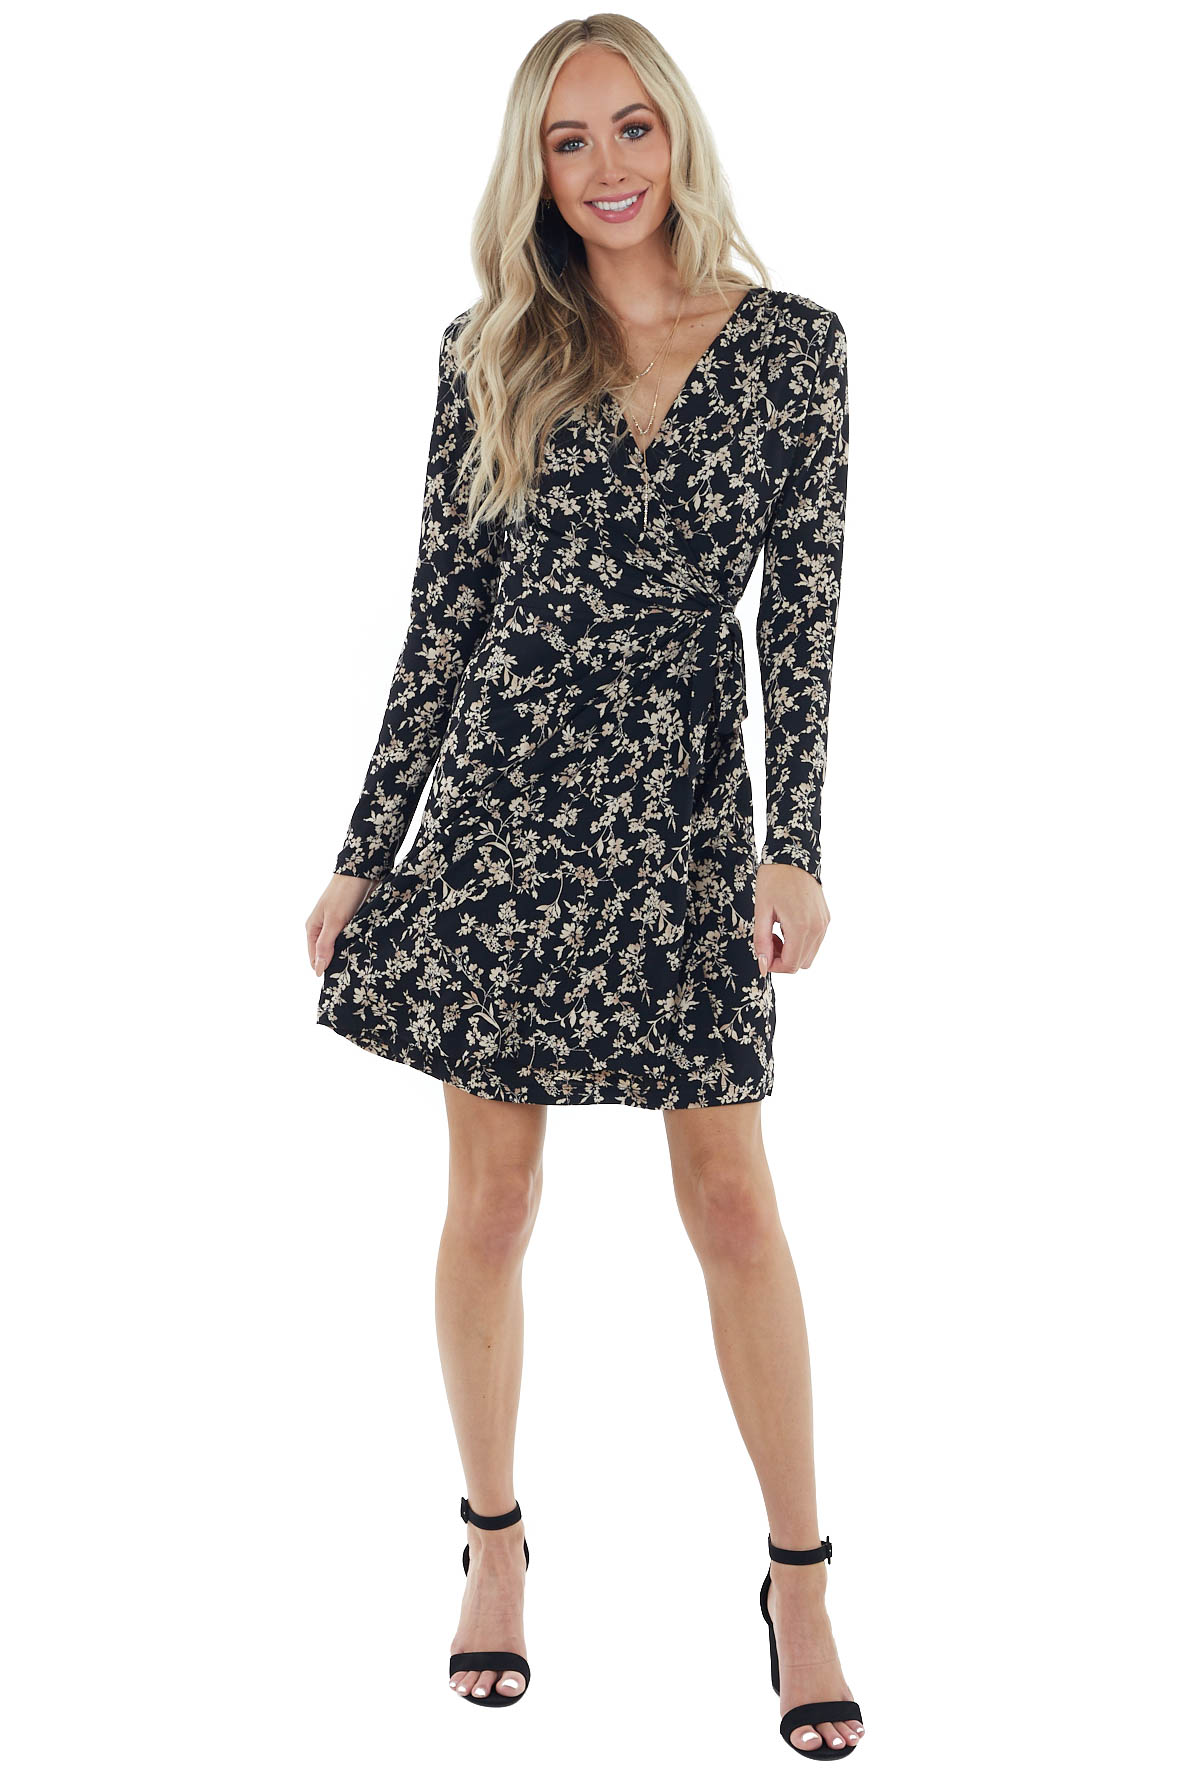 Black and Oatmeal Floral Faux Wrap Dress with Long Sleeves